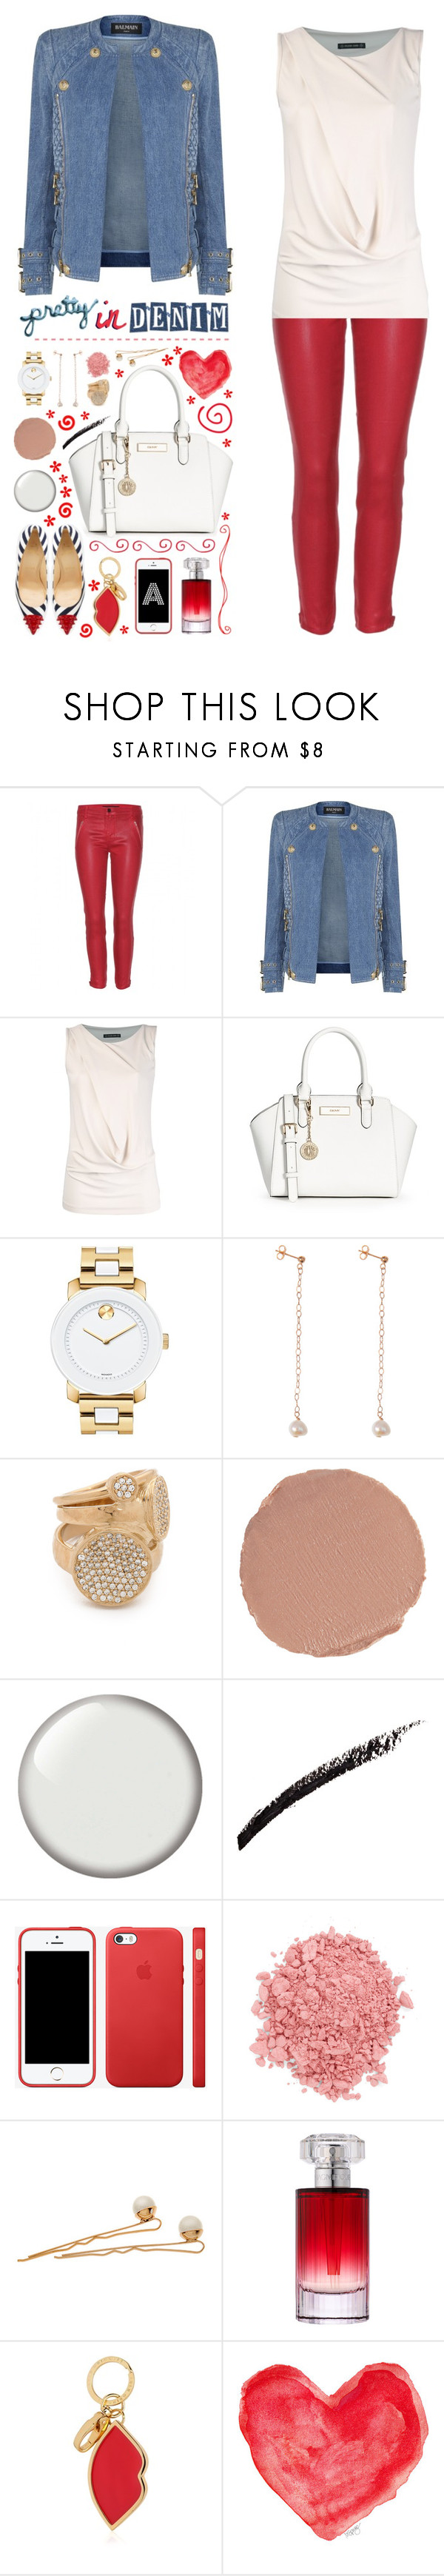 """Pretty in Denim"" by ealkhaldi ❤ liked on Polyvore featuring J Brand, Balmain, Plein Sud, Christian Louboutin, DKNY, Movado, Ginette NY, Melinda Maria, Charlotte Tilbury and Seche"